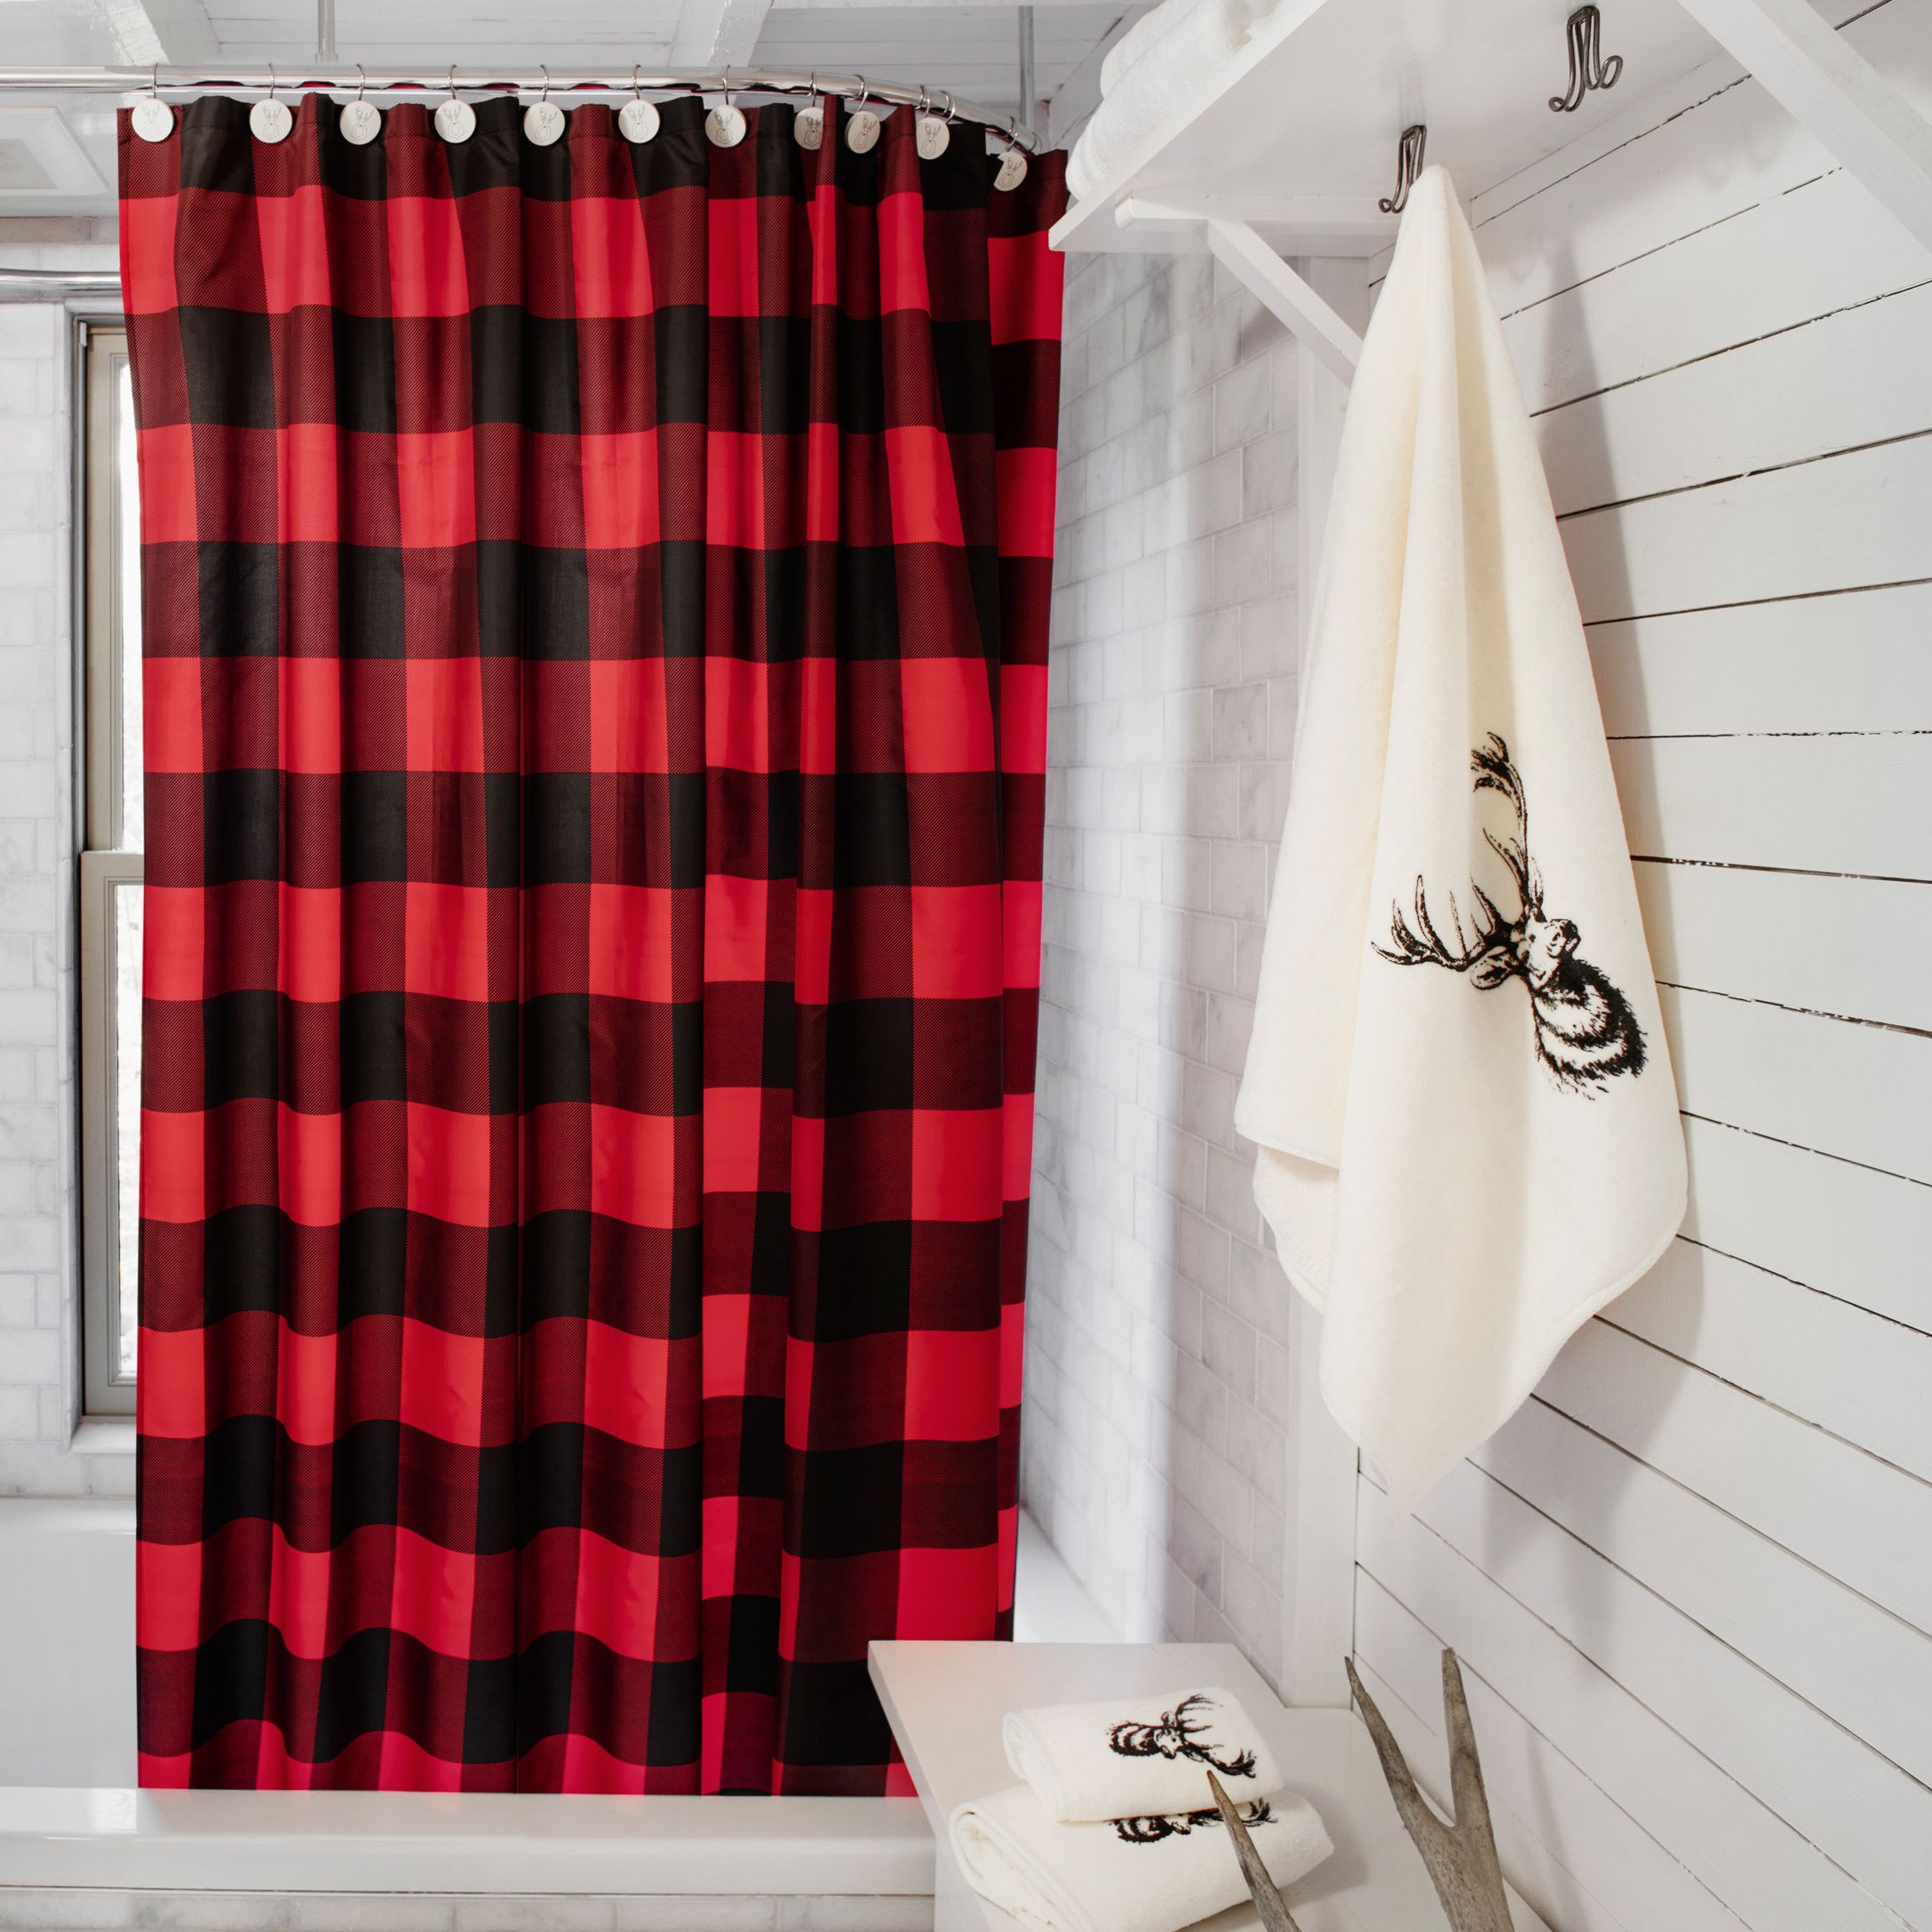 Buffalo check shower curtain simons decor bathroom for Red and black bathroom accessories sets